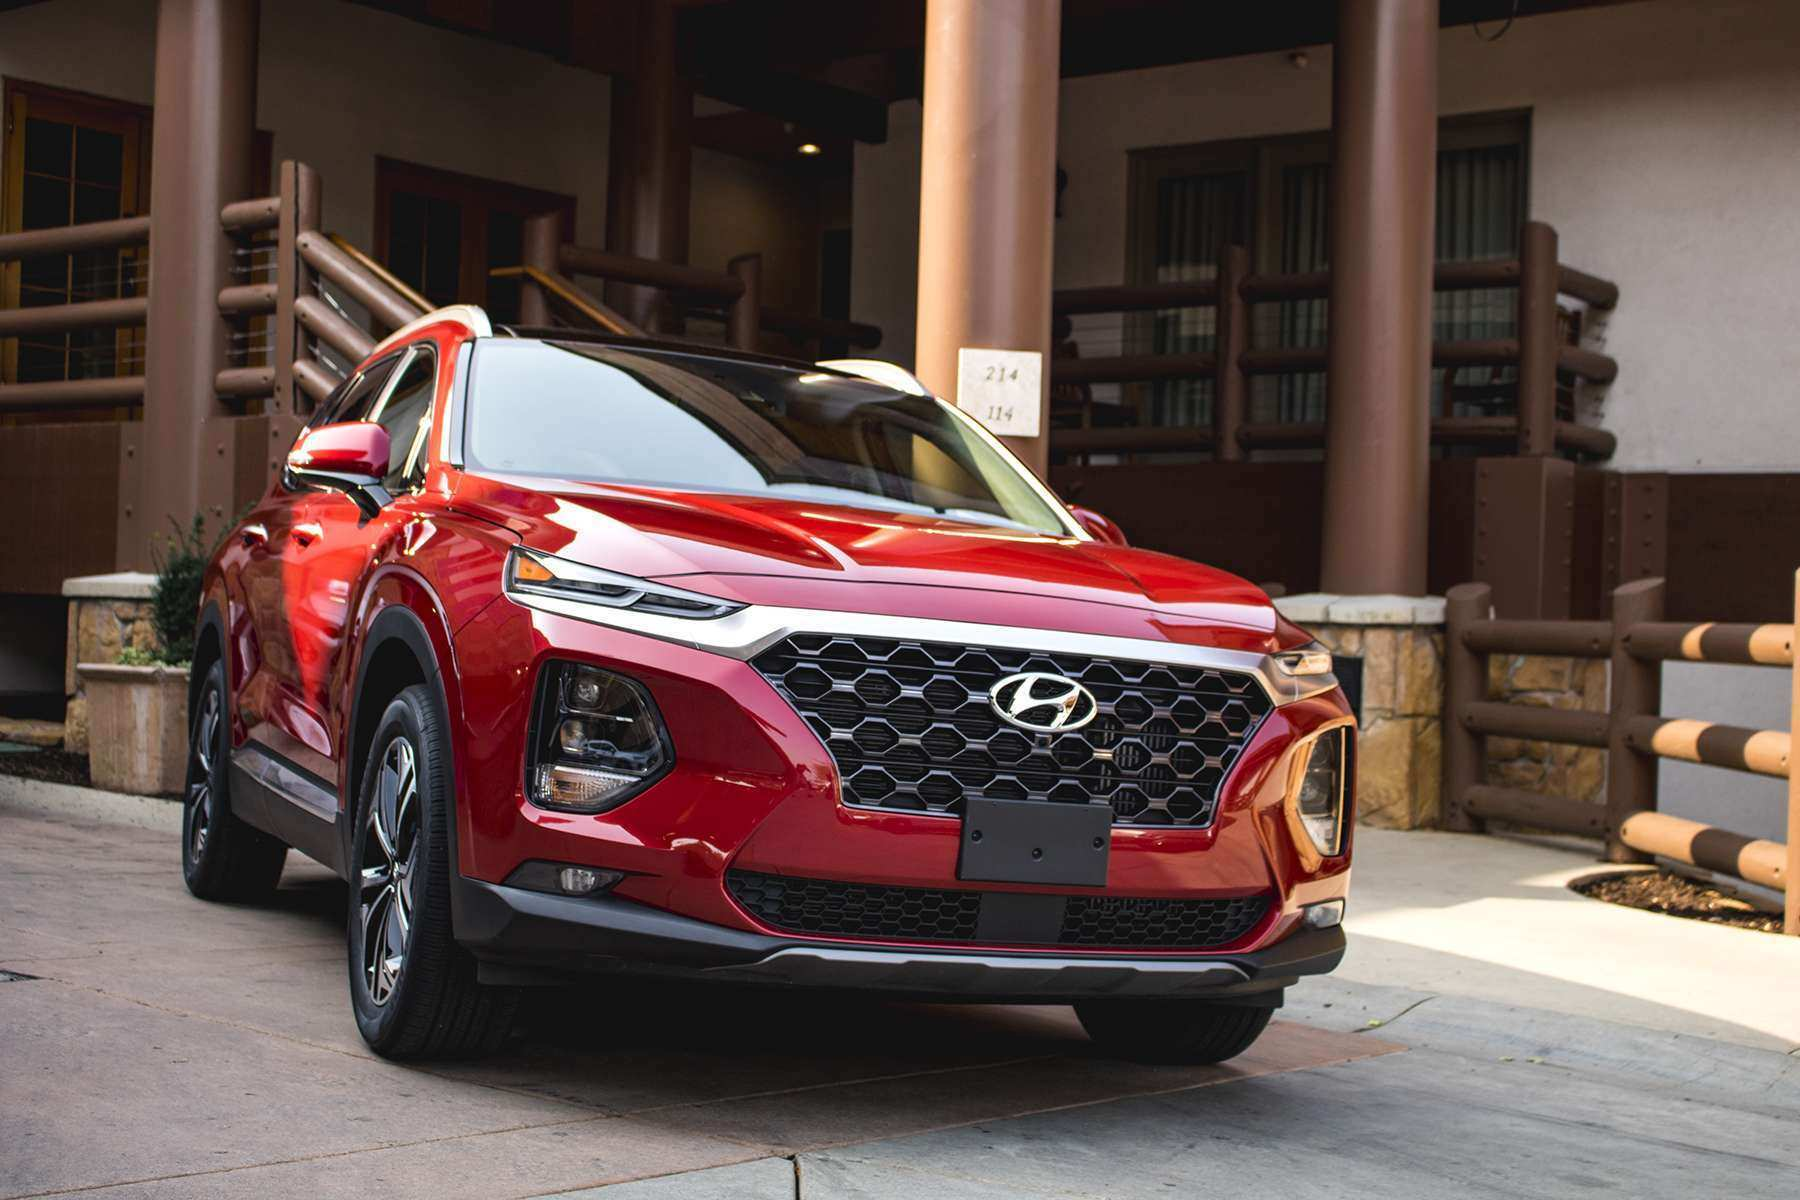 67 All New 2019 Hyundai Full Size Suv Picture for 2019 Hyundai Full Size Suv